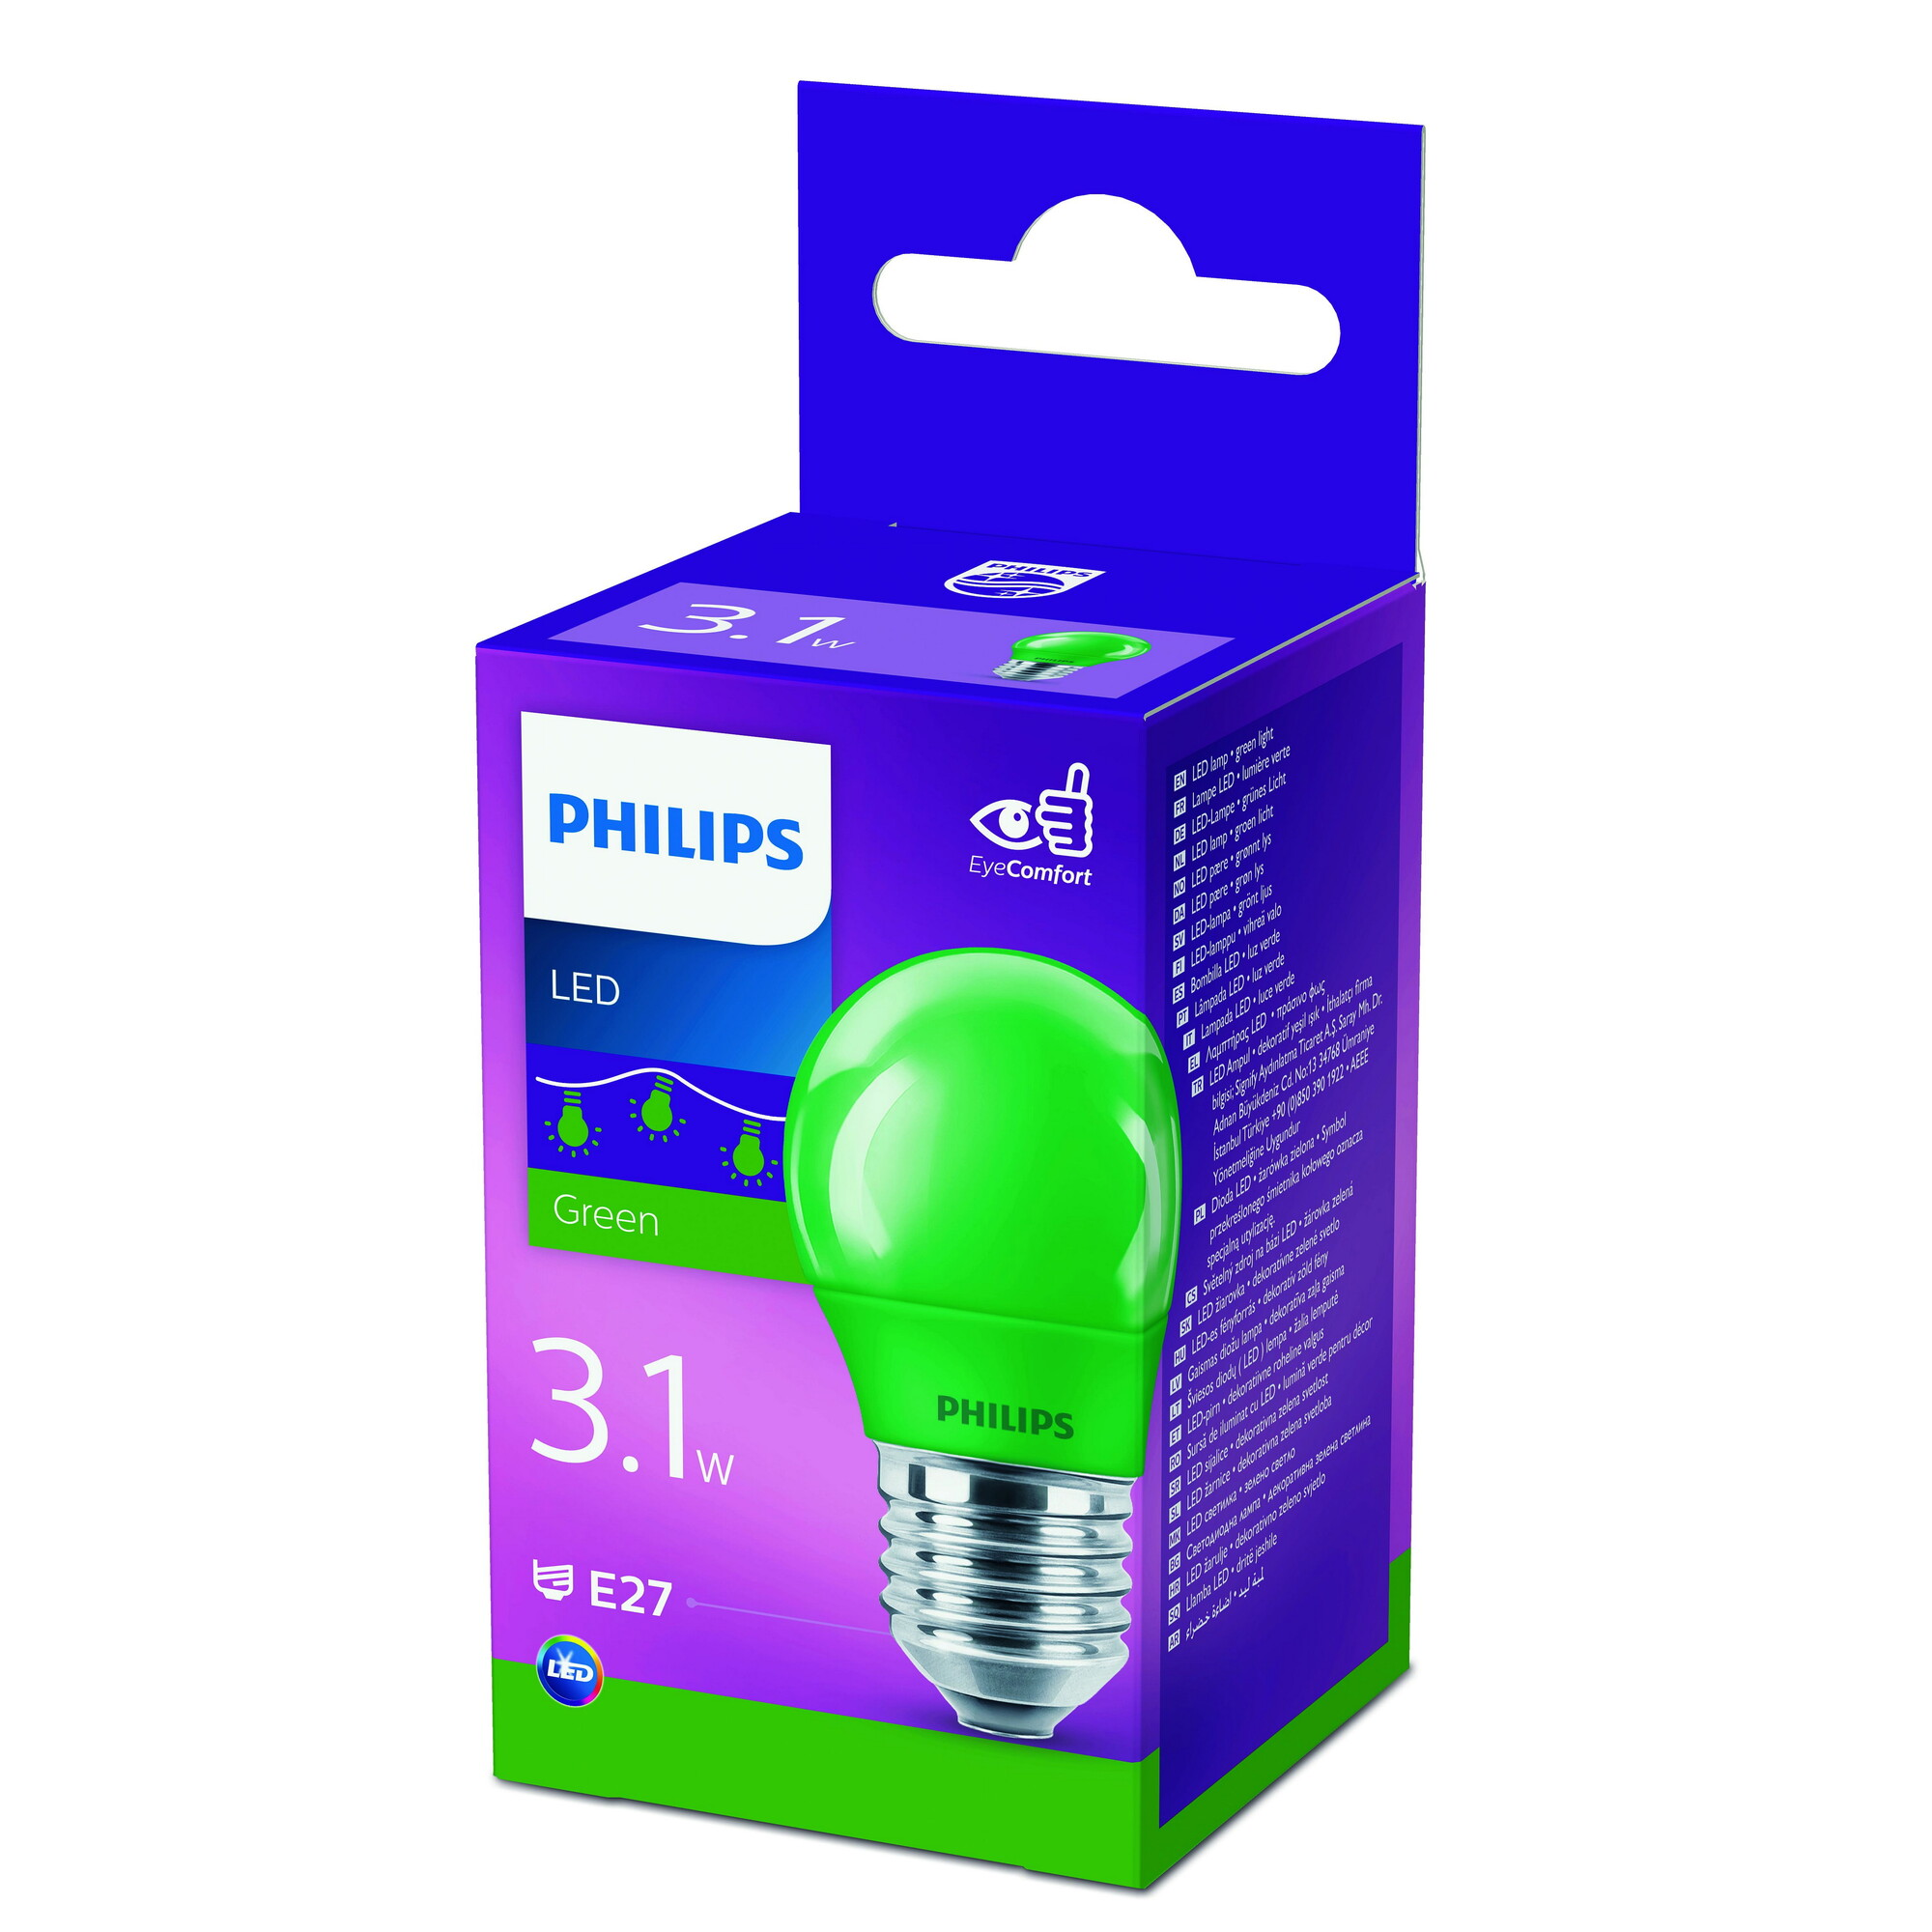 Philips LED E27 3,1W 0lm Kogel Frosted